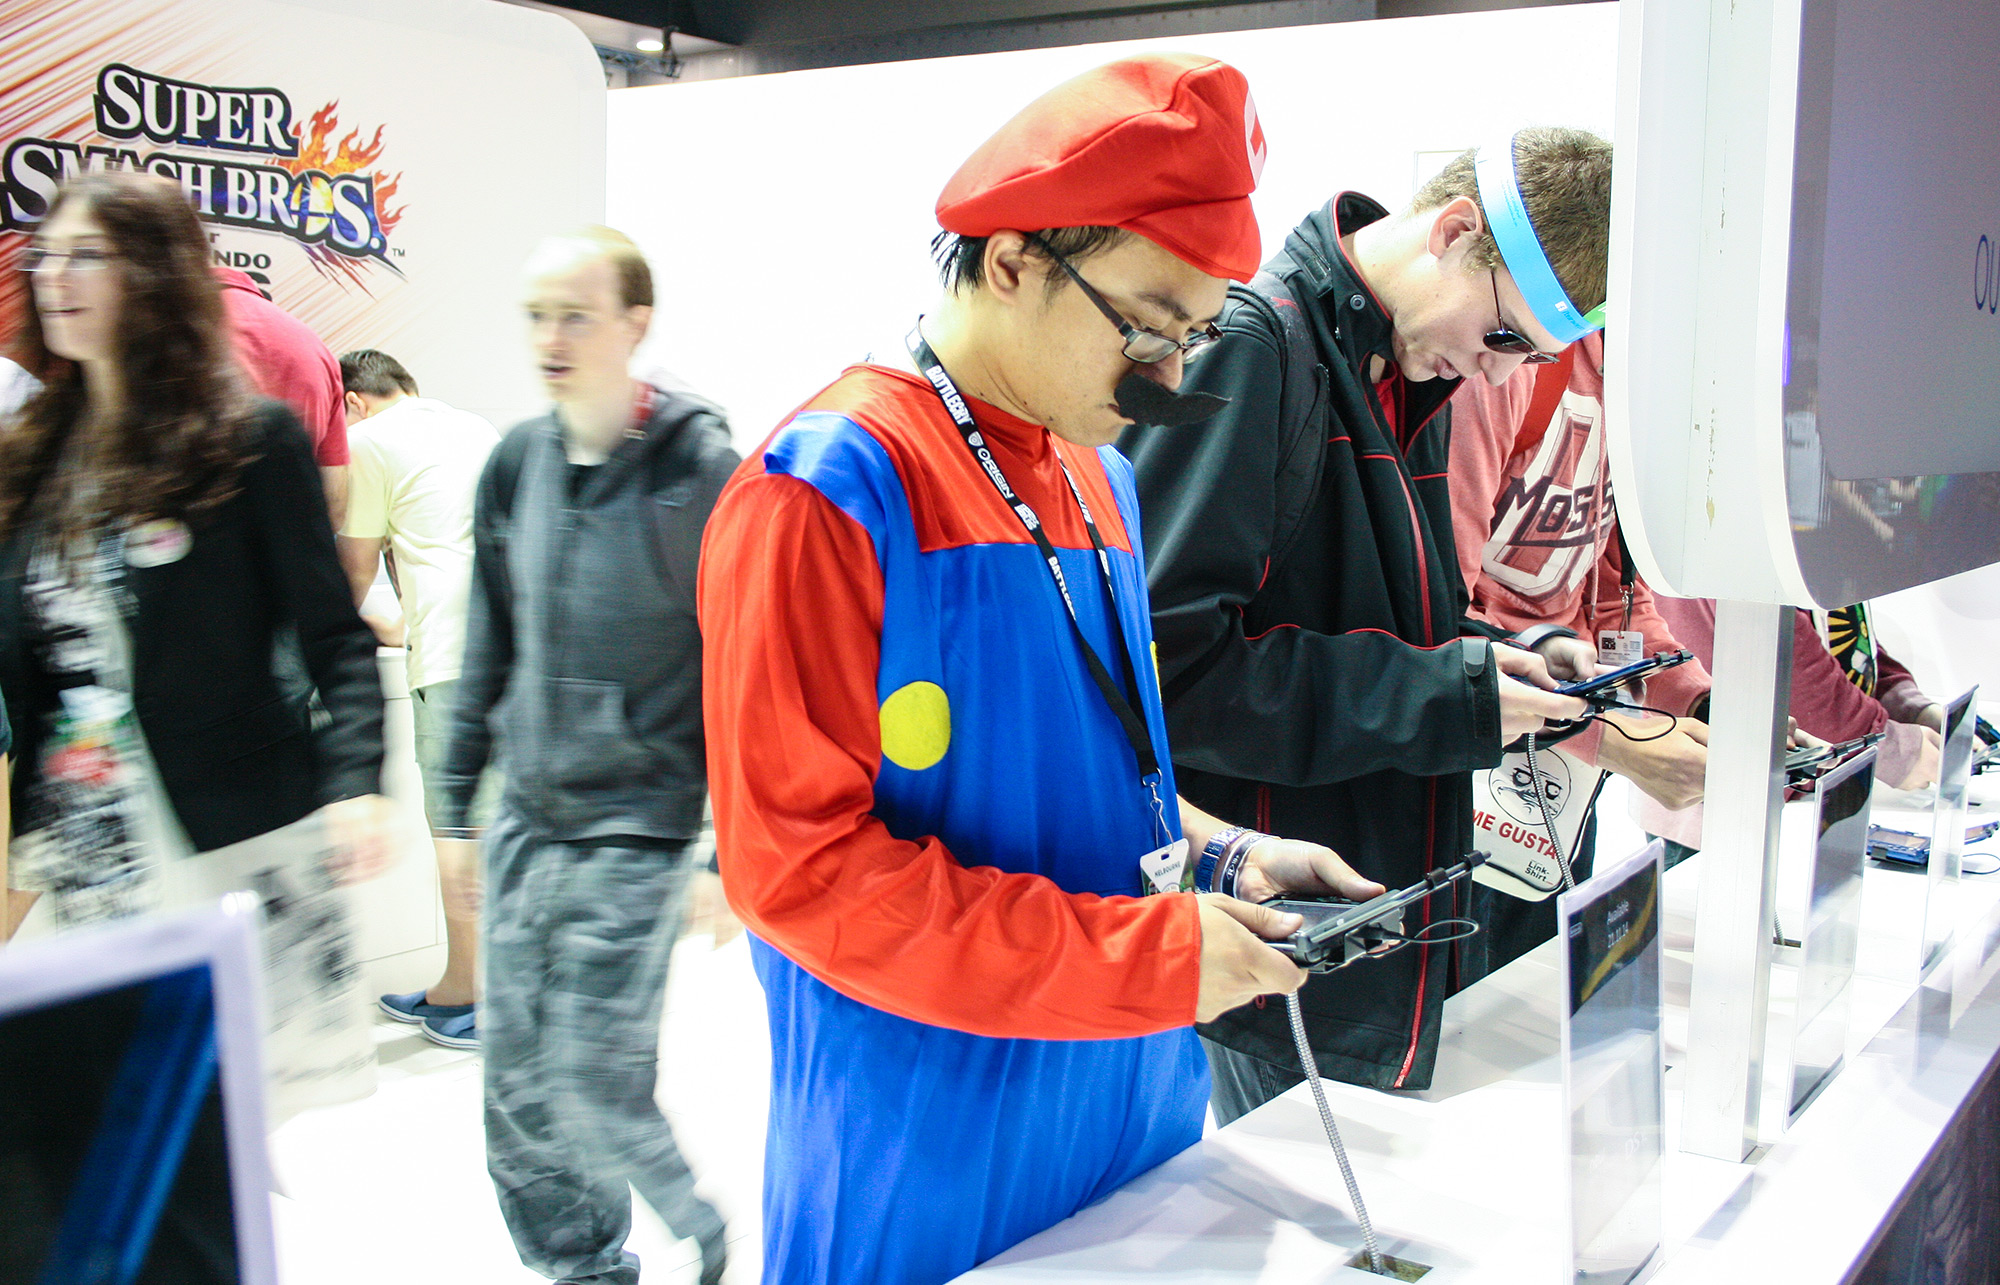 PAX Aus - Melbourne 2014 - Mario cosplay playing 3DS